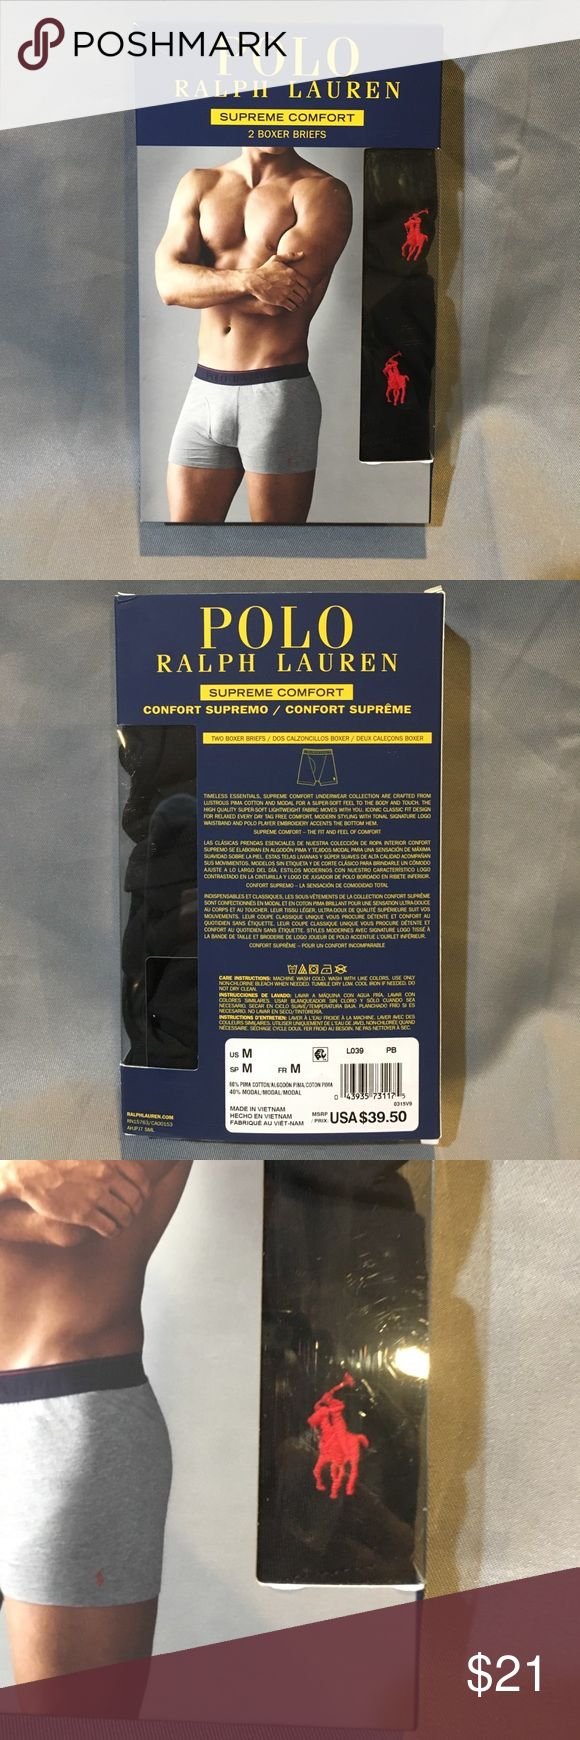 NWT Polo Ralph Lauren Black Boxer Briefs NWT Polo Ralph Lauren Black Boxer Briefs Supreme Comfort.  Black with a red logo.  Available in gray size large and navy size medium. Polo by Ralph Lauren Underwear & Socks Boxer Briefs